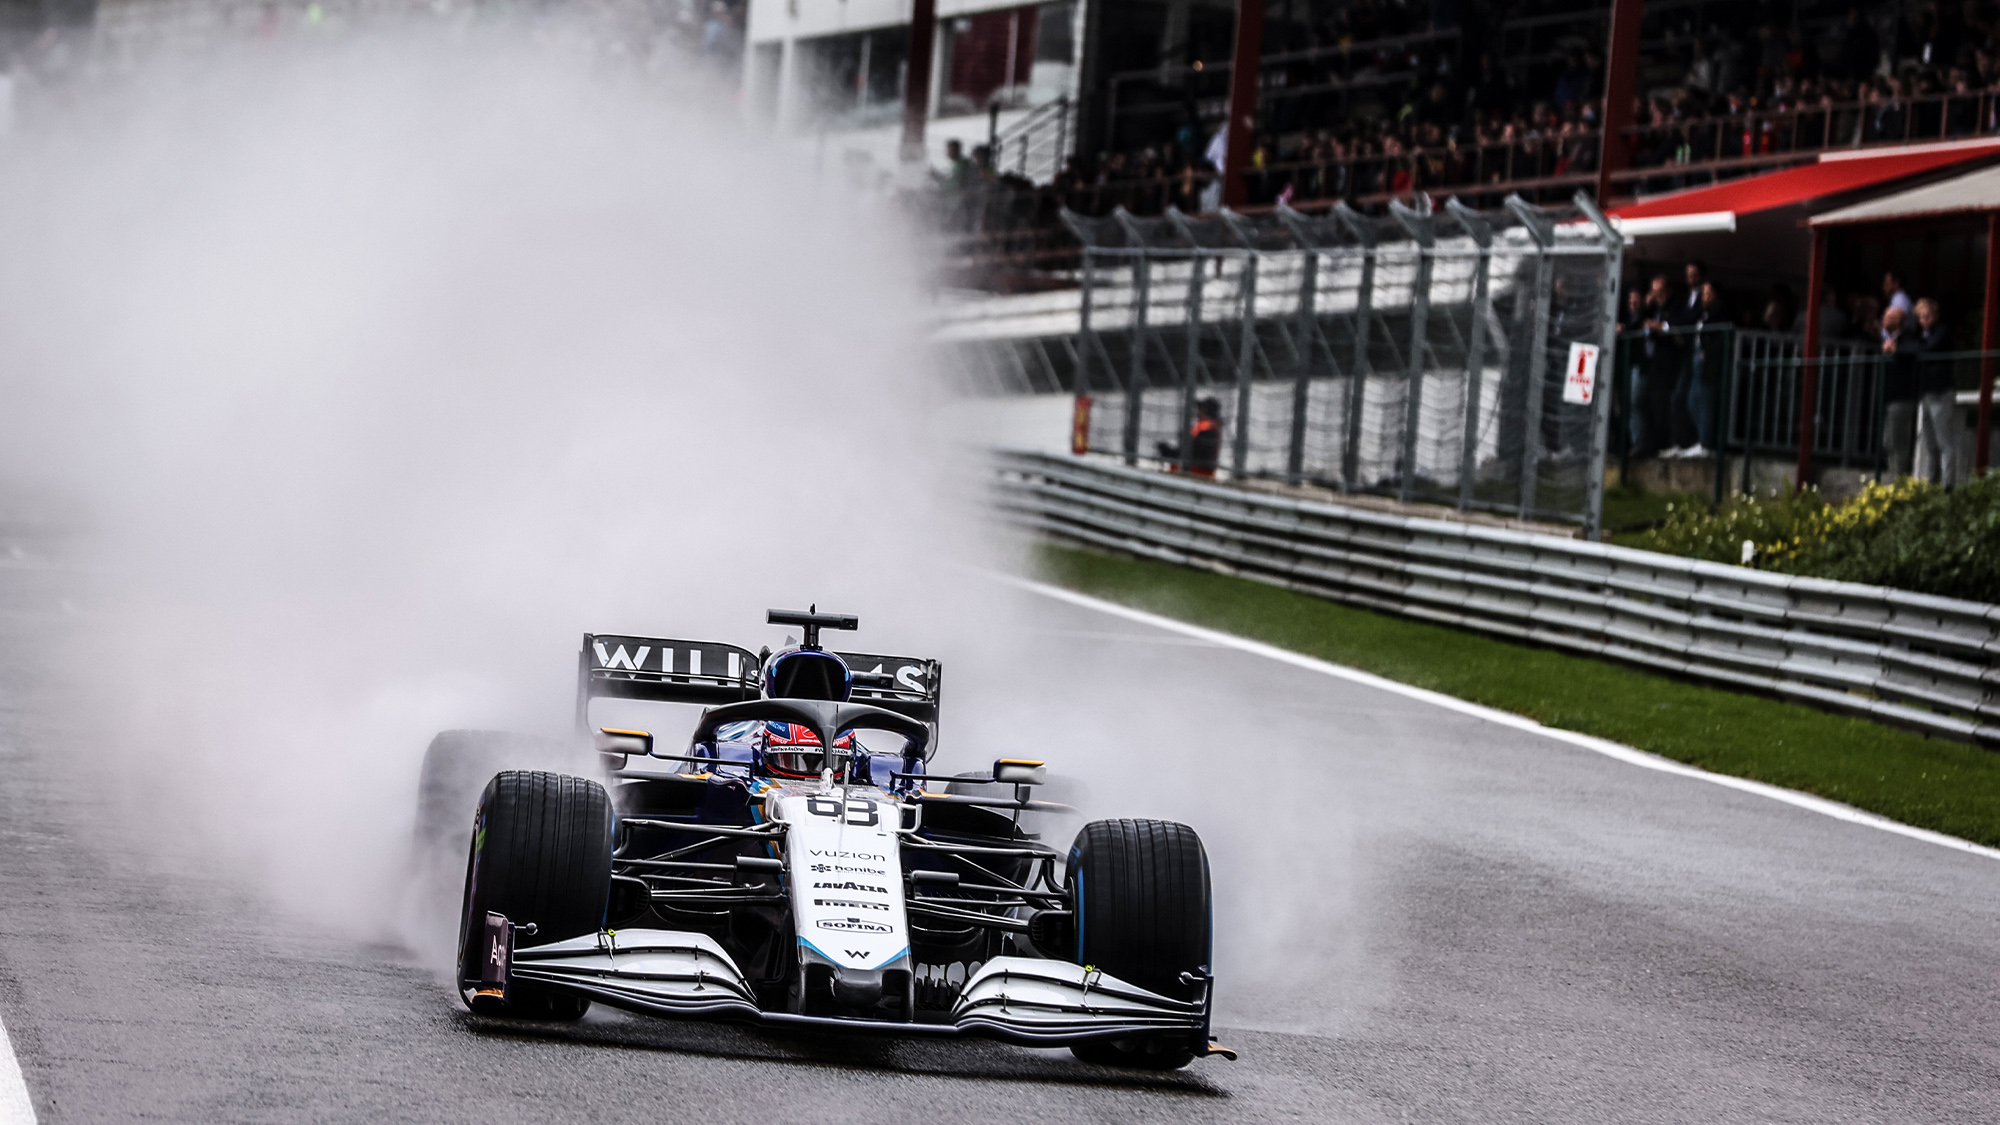 George Russell throws up a cloud of spray in qualifying for the 021 Belgian Grand Prix